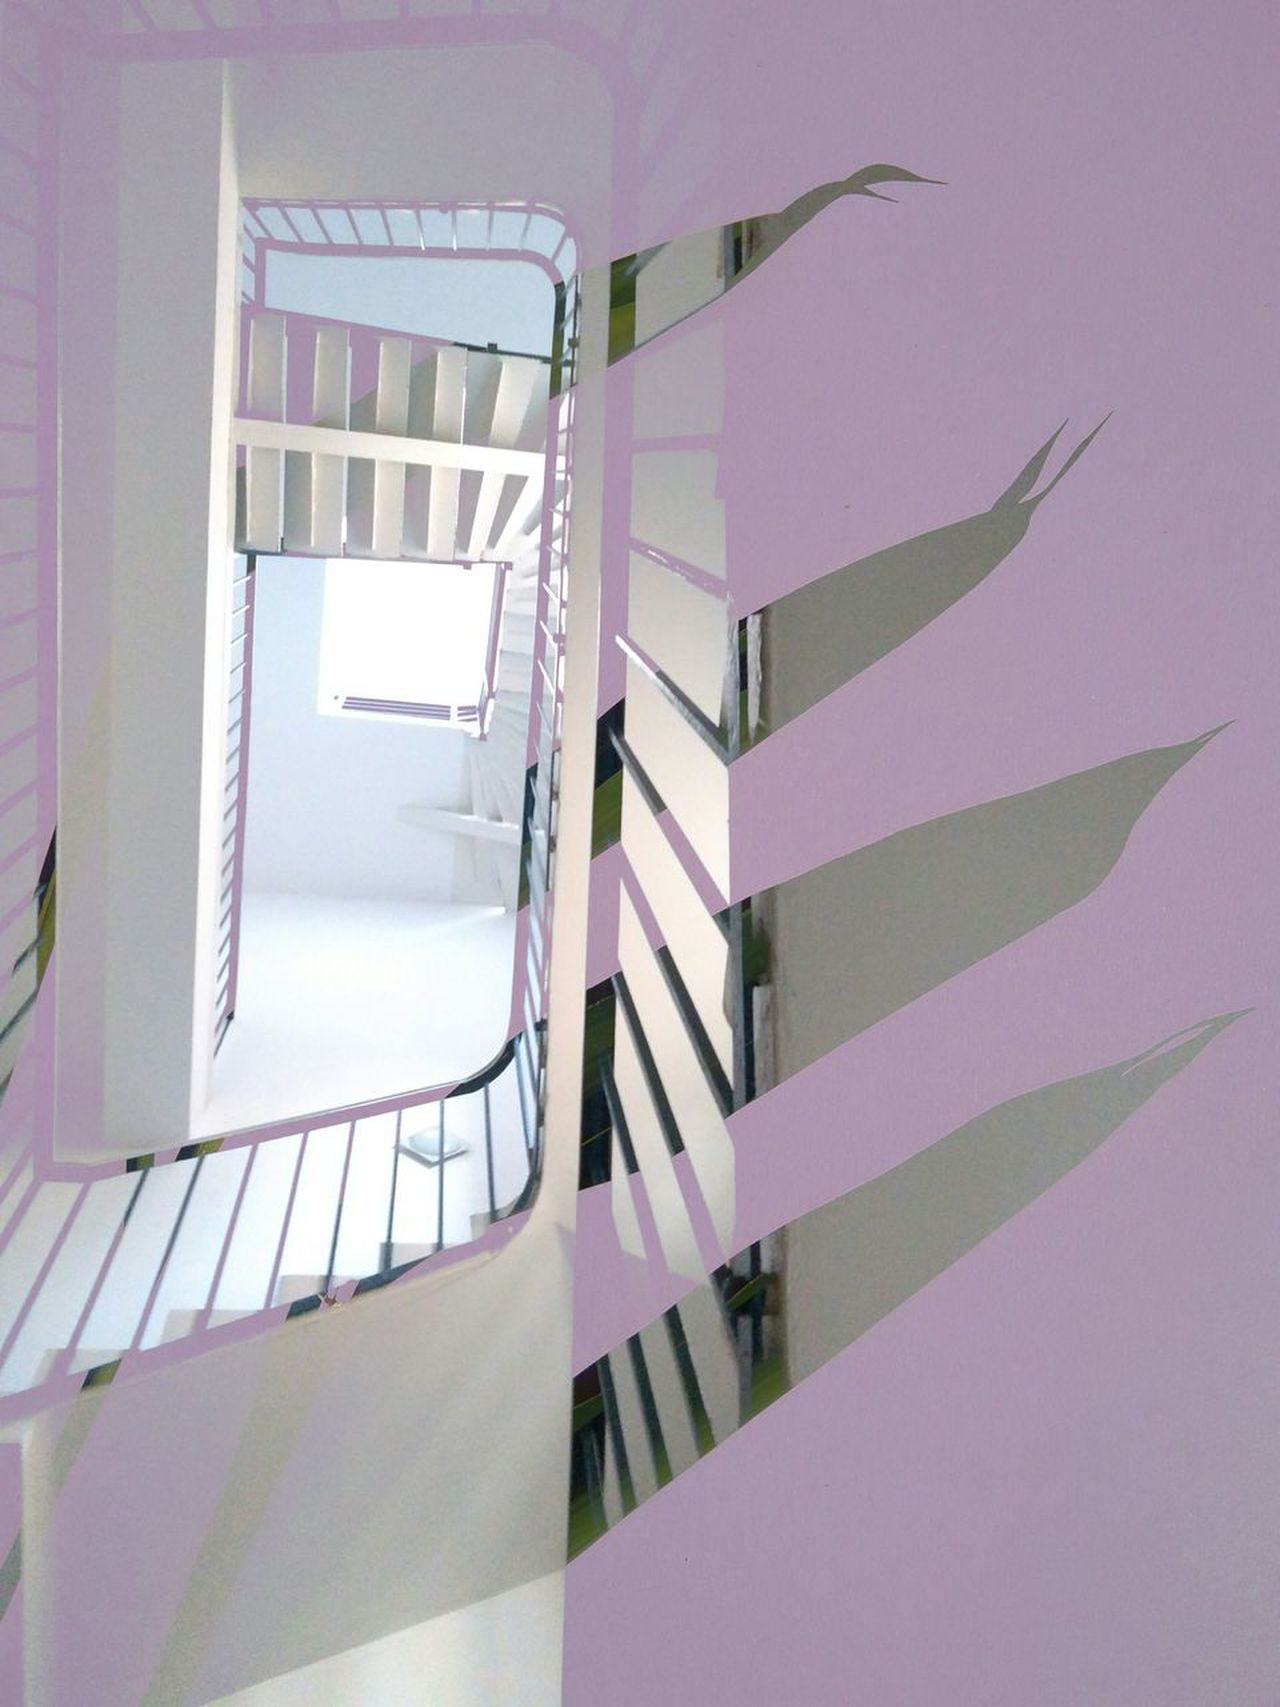 Staircase Steps And Staircases Steps Railing Spiral Architecture Built Structure Spiral Staircase People Cut And Paste Collage Double Exposure Graphic Design Natural Vs Artificial Leaves Negative Space Pink Color Pastel Power Pastel Colors